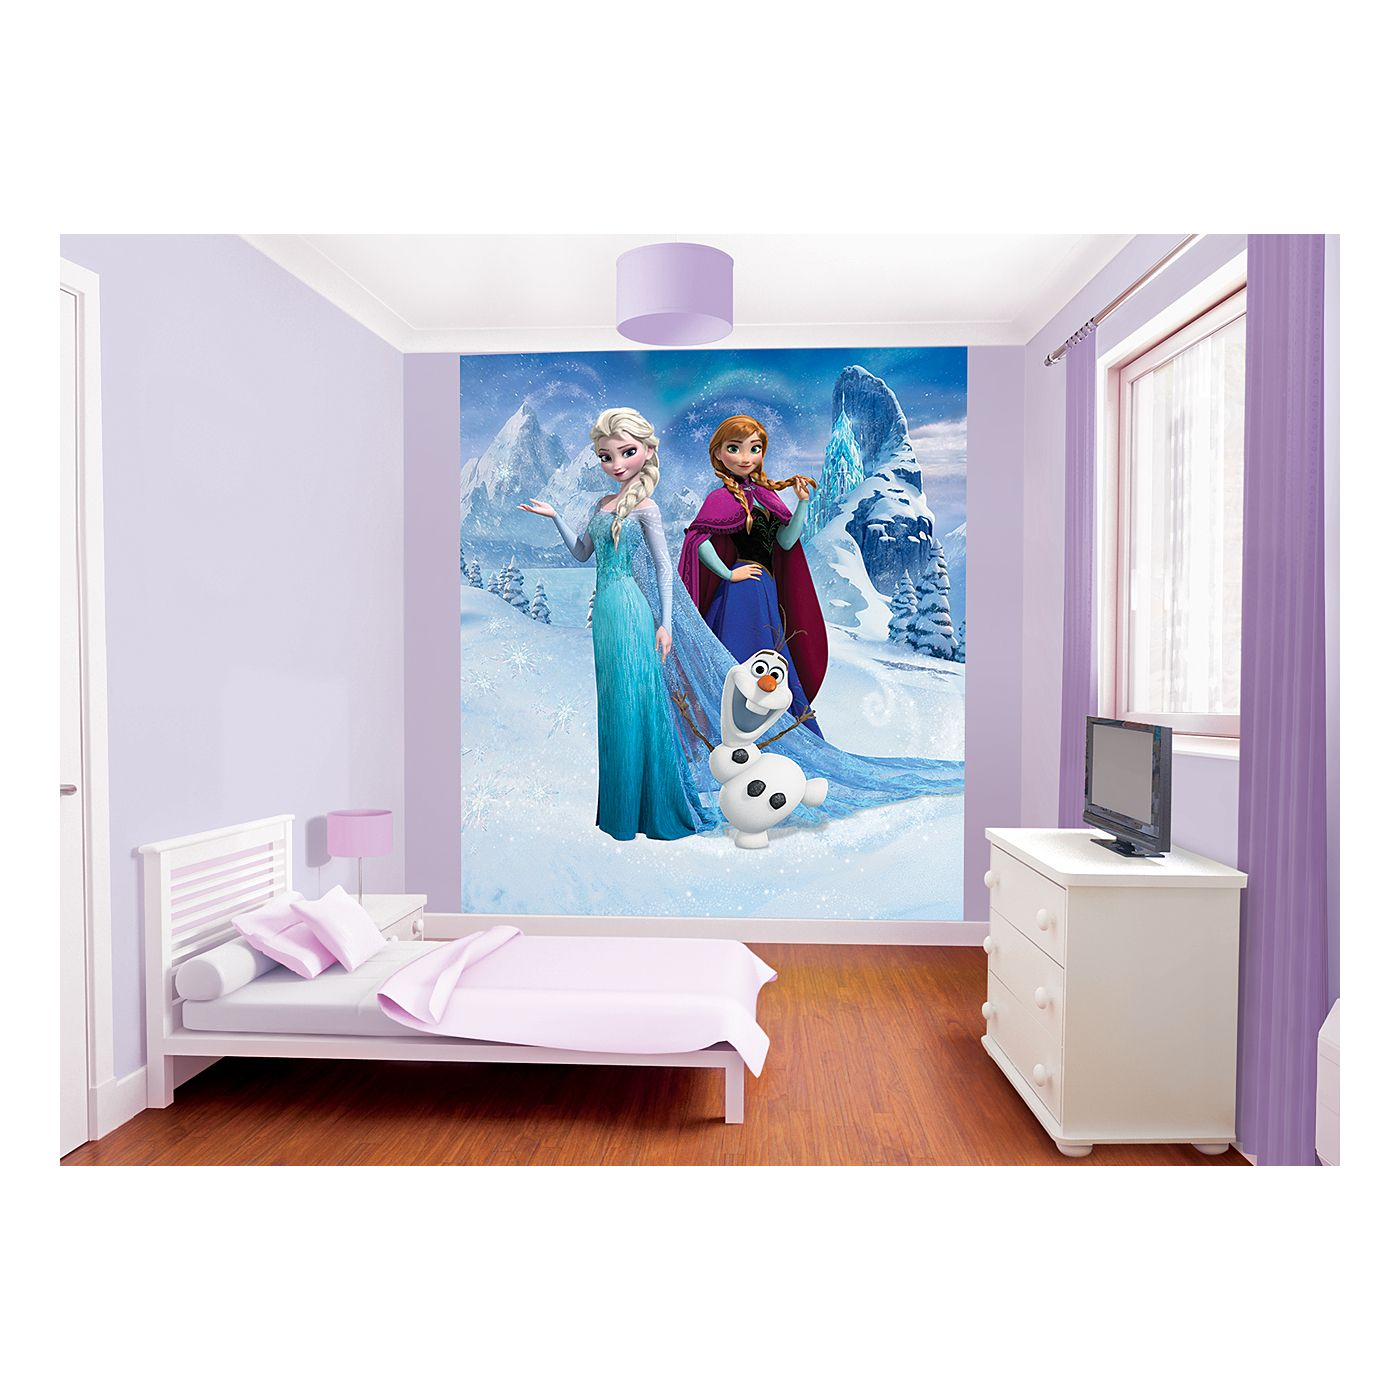 disney frozen wallpaper mural asda girls room pinterest disney frozen wallpaper mural asda